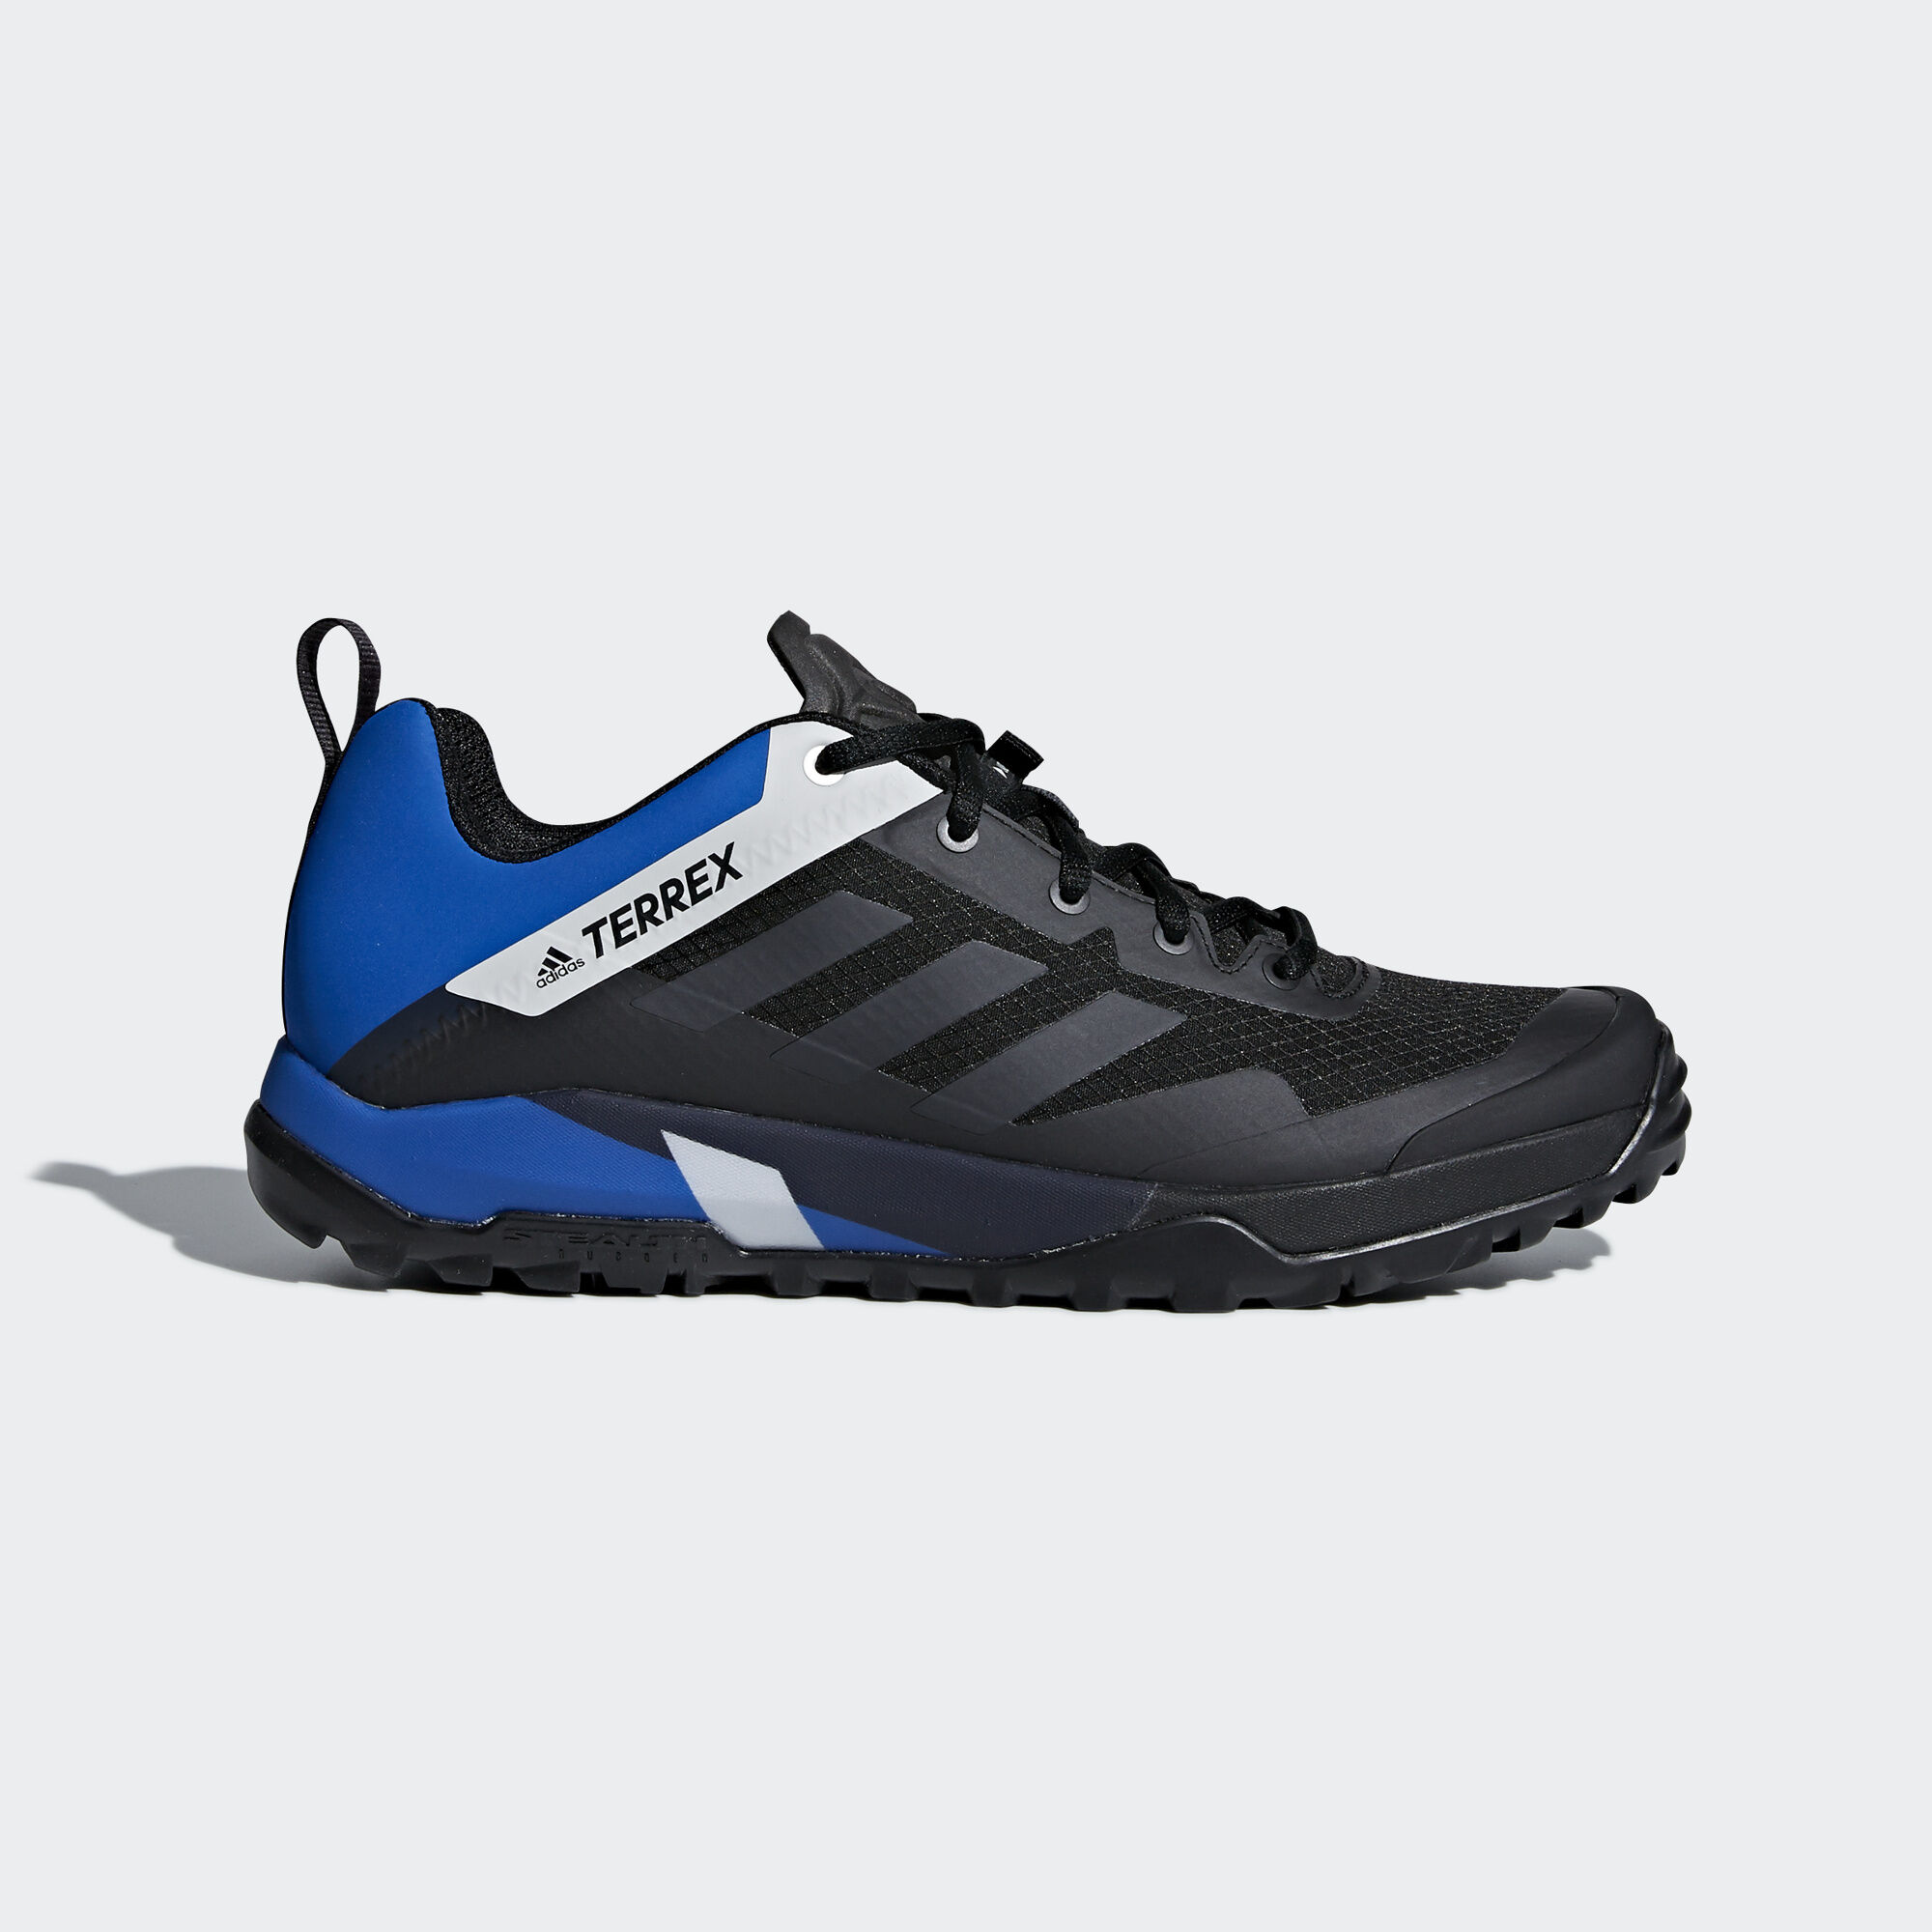 adidas Terrex Trail Cross SL Chaussures Noir adidas Asia Middle East